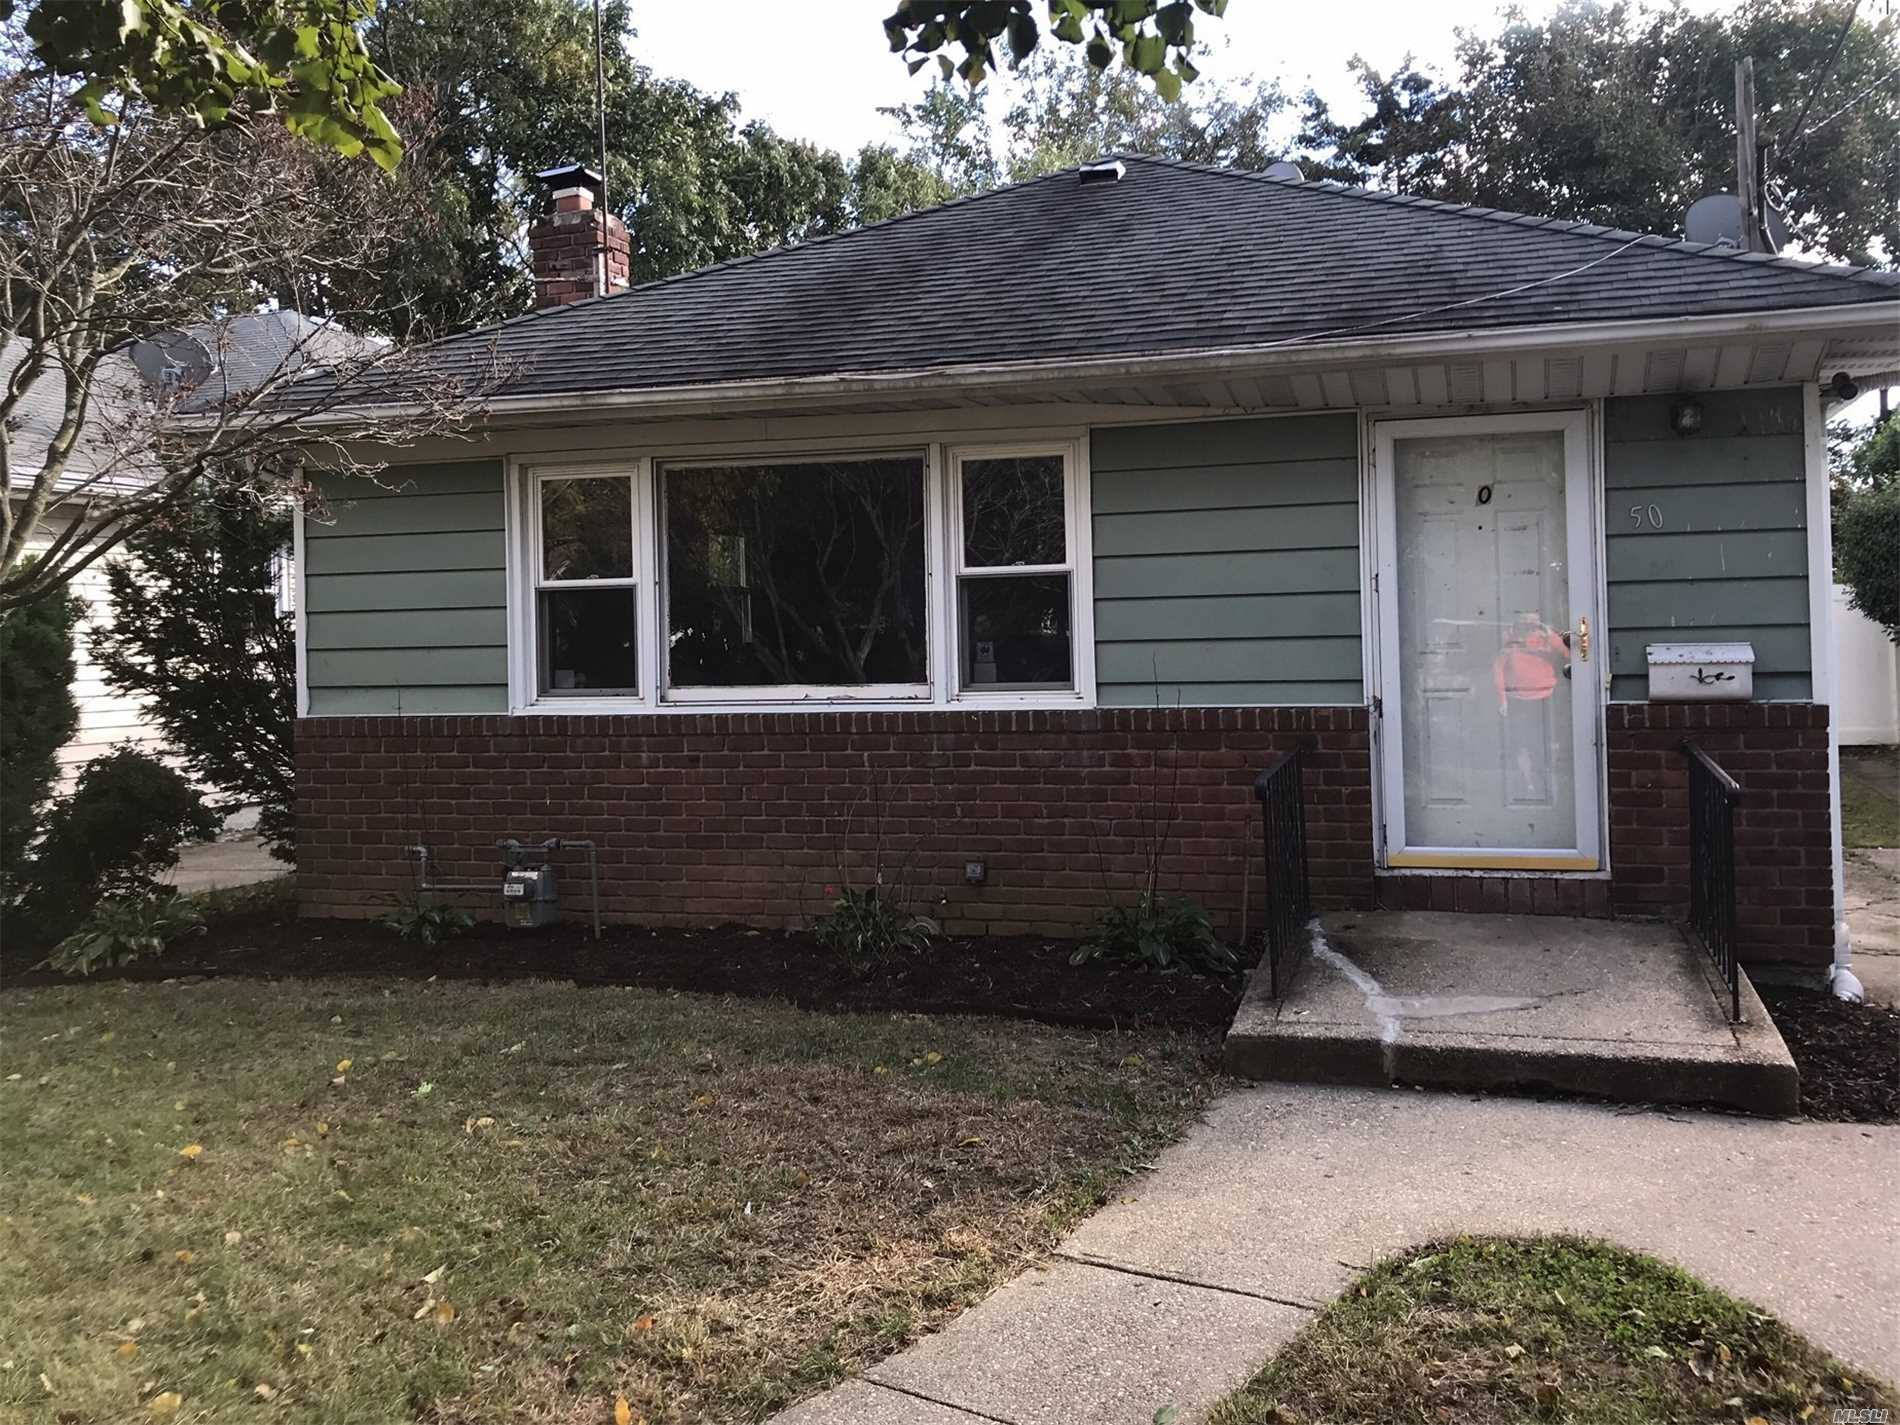 Spacious Split Ranch Style, Features Living Room, Dining Room,  Kitchen, 3 Bedrooms, 1.5 Bathrooms, Family Room With Ose. Close To Area Shopping, Transportation, Parkways. Great Opportunity.